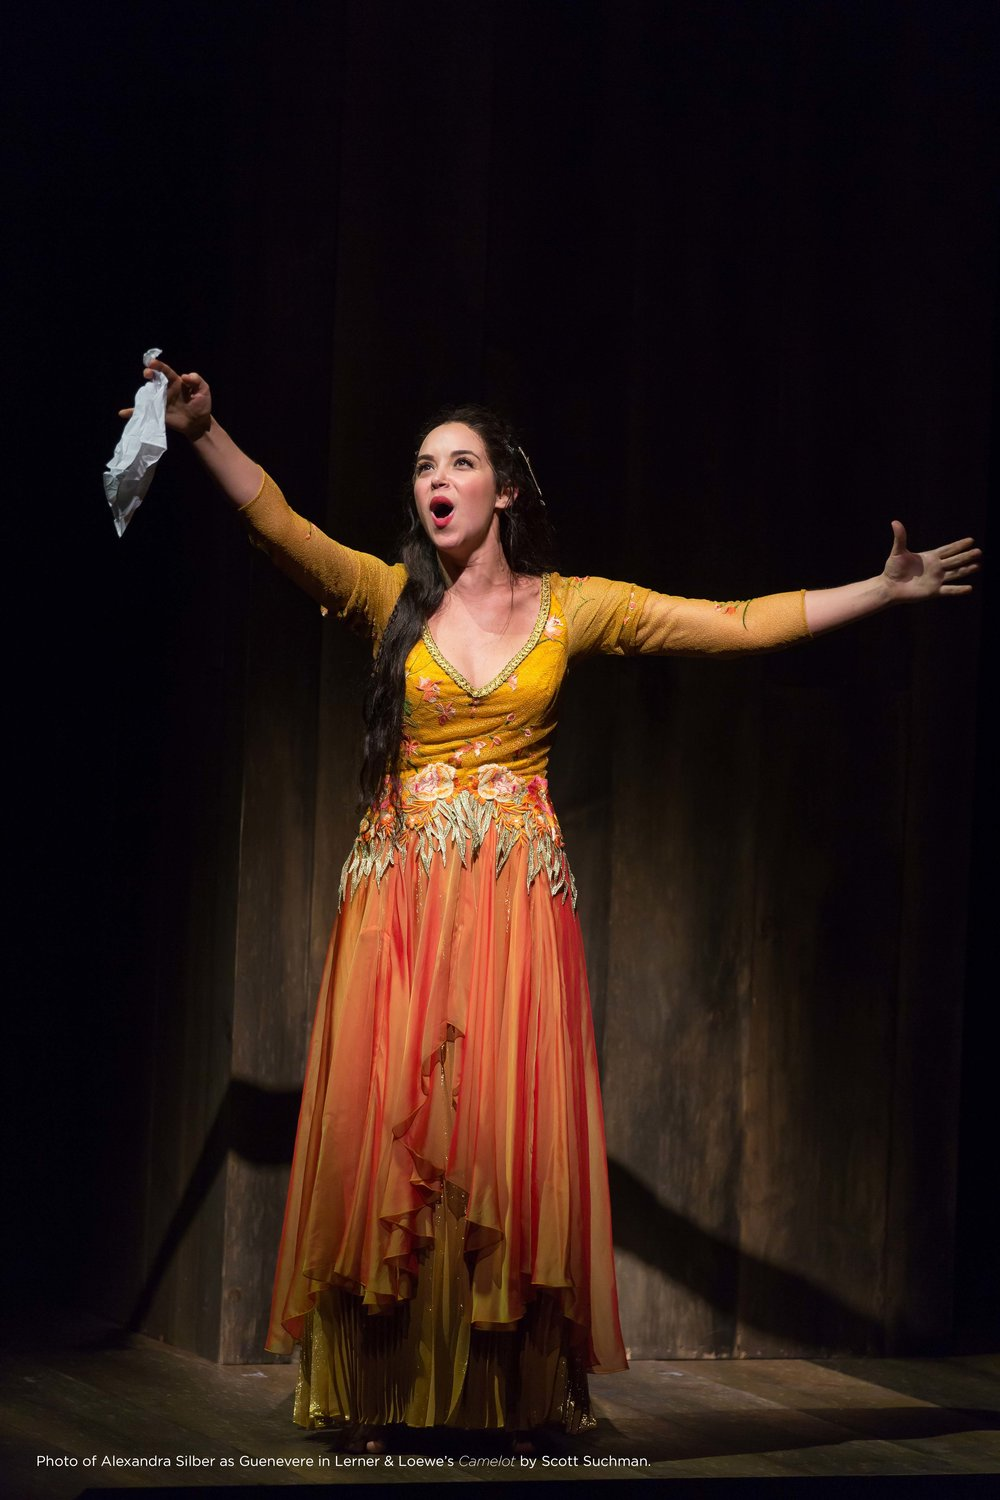 "Alexandra Silber in Lerner & Lowe's ""Camelot"" at Shakespeare Theatre Company in Washington, DC, Photo Credit: Scott Suchman"